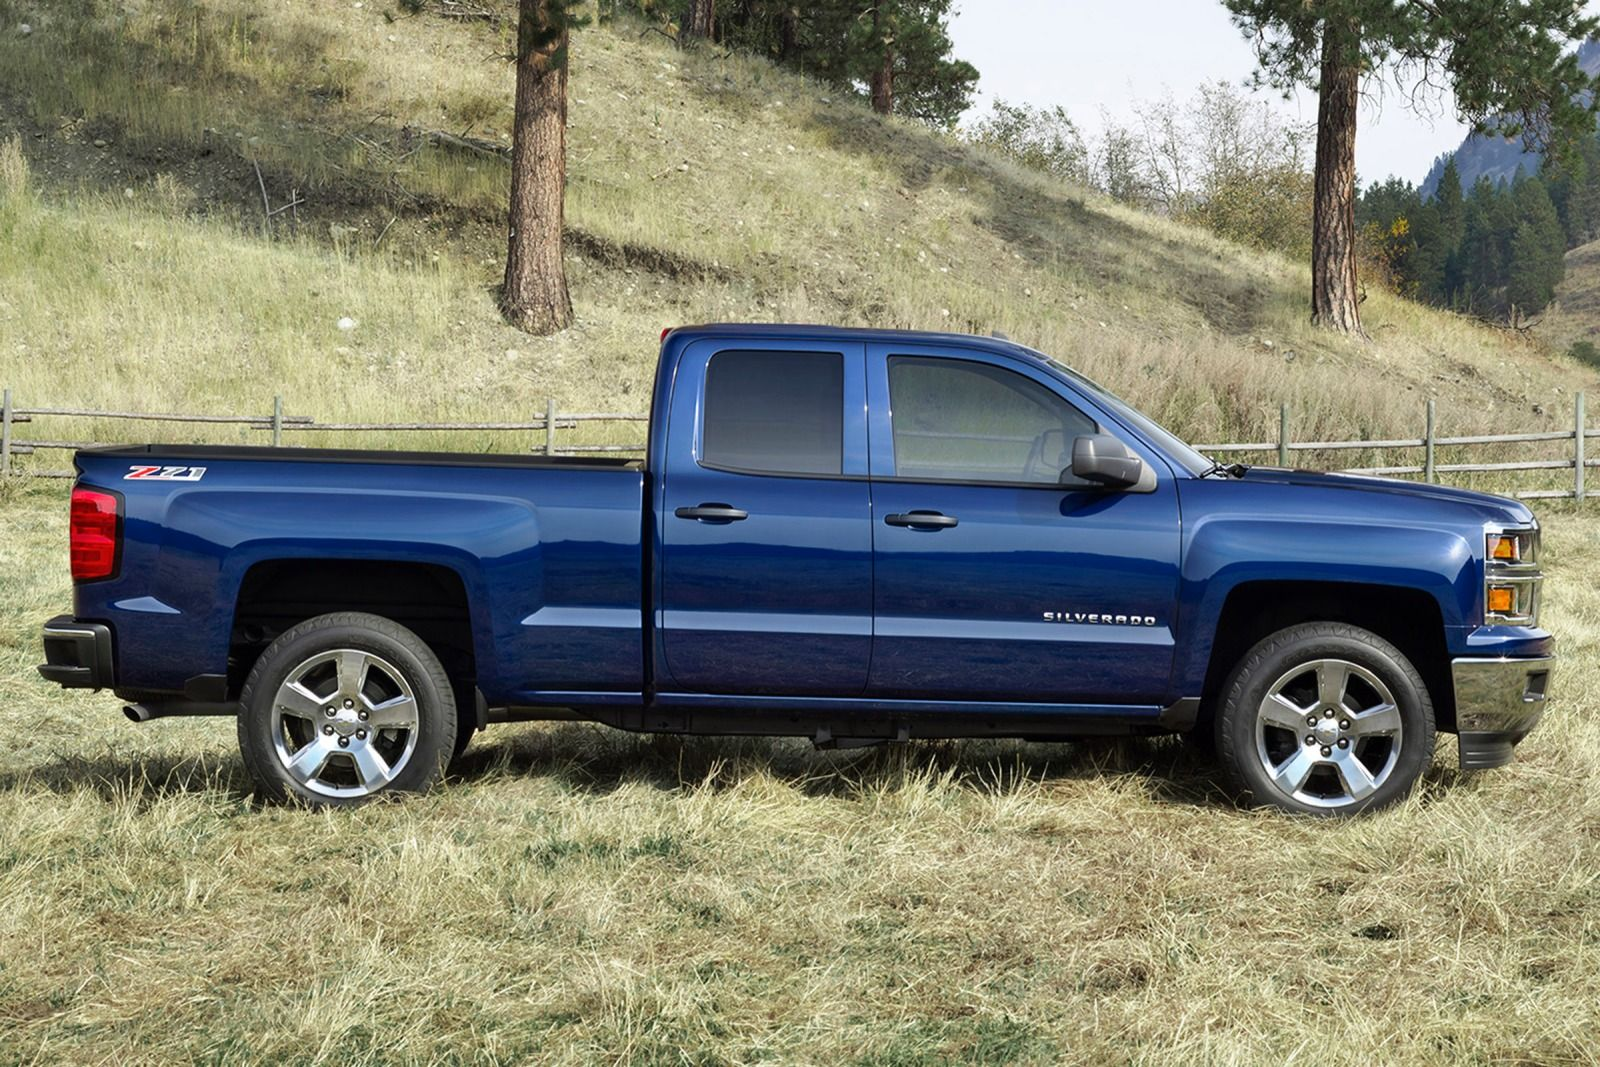 Chevy Silverado Truck Bed Dimensions >> Comparison - Chevrolet Silverado 1500 Double Cab LTZ 2015 - vs - GMC Sierra 1500 Double Cab SLT ...